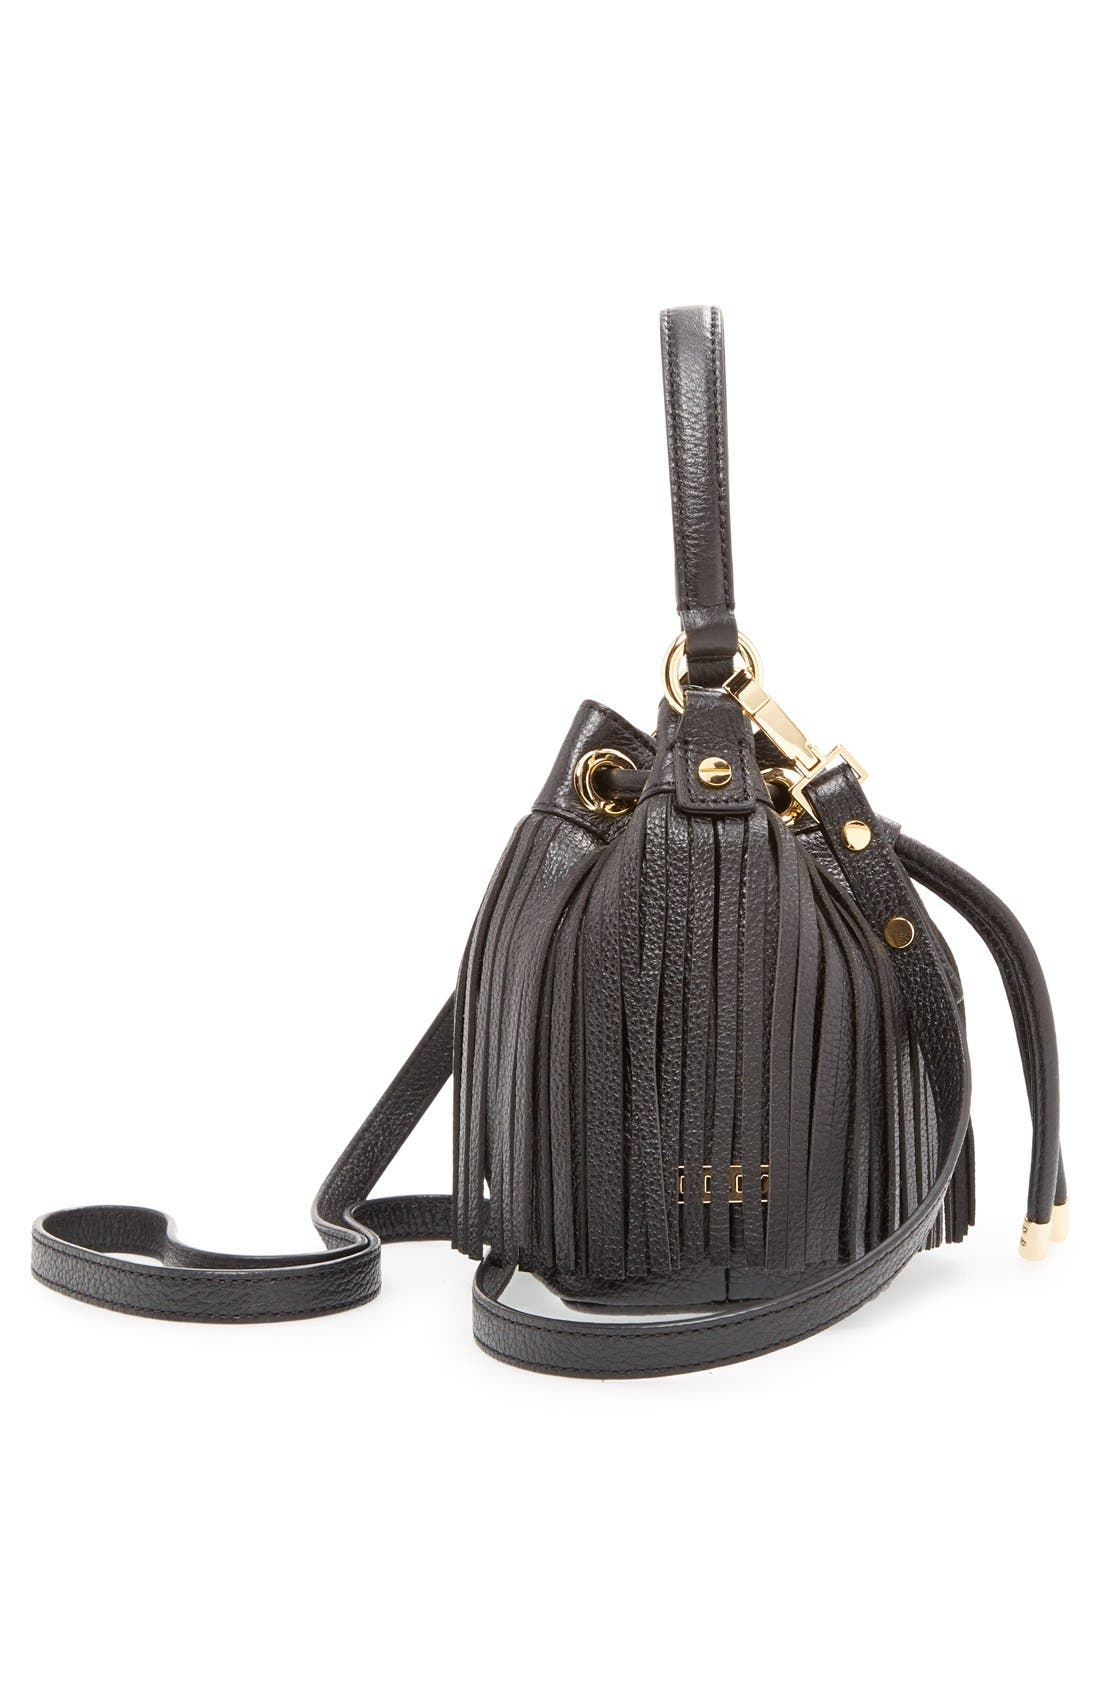 MILLY, 'Small Essex' Fringed Leather Bucket Bag, Alternate thumbnail 6, color, 001